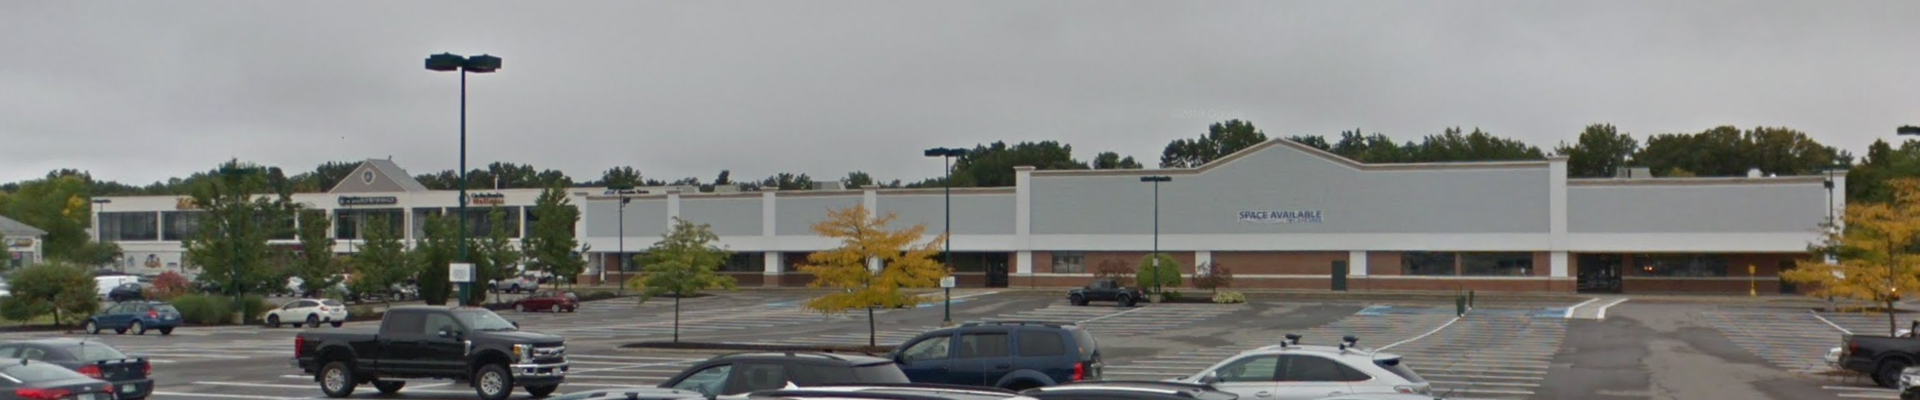 Shaw's Supermarket – Manchester, New Hampshire